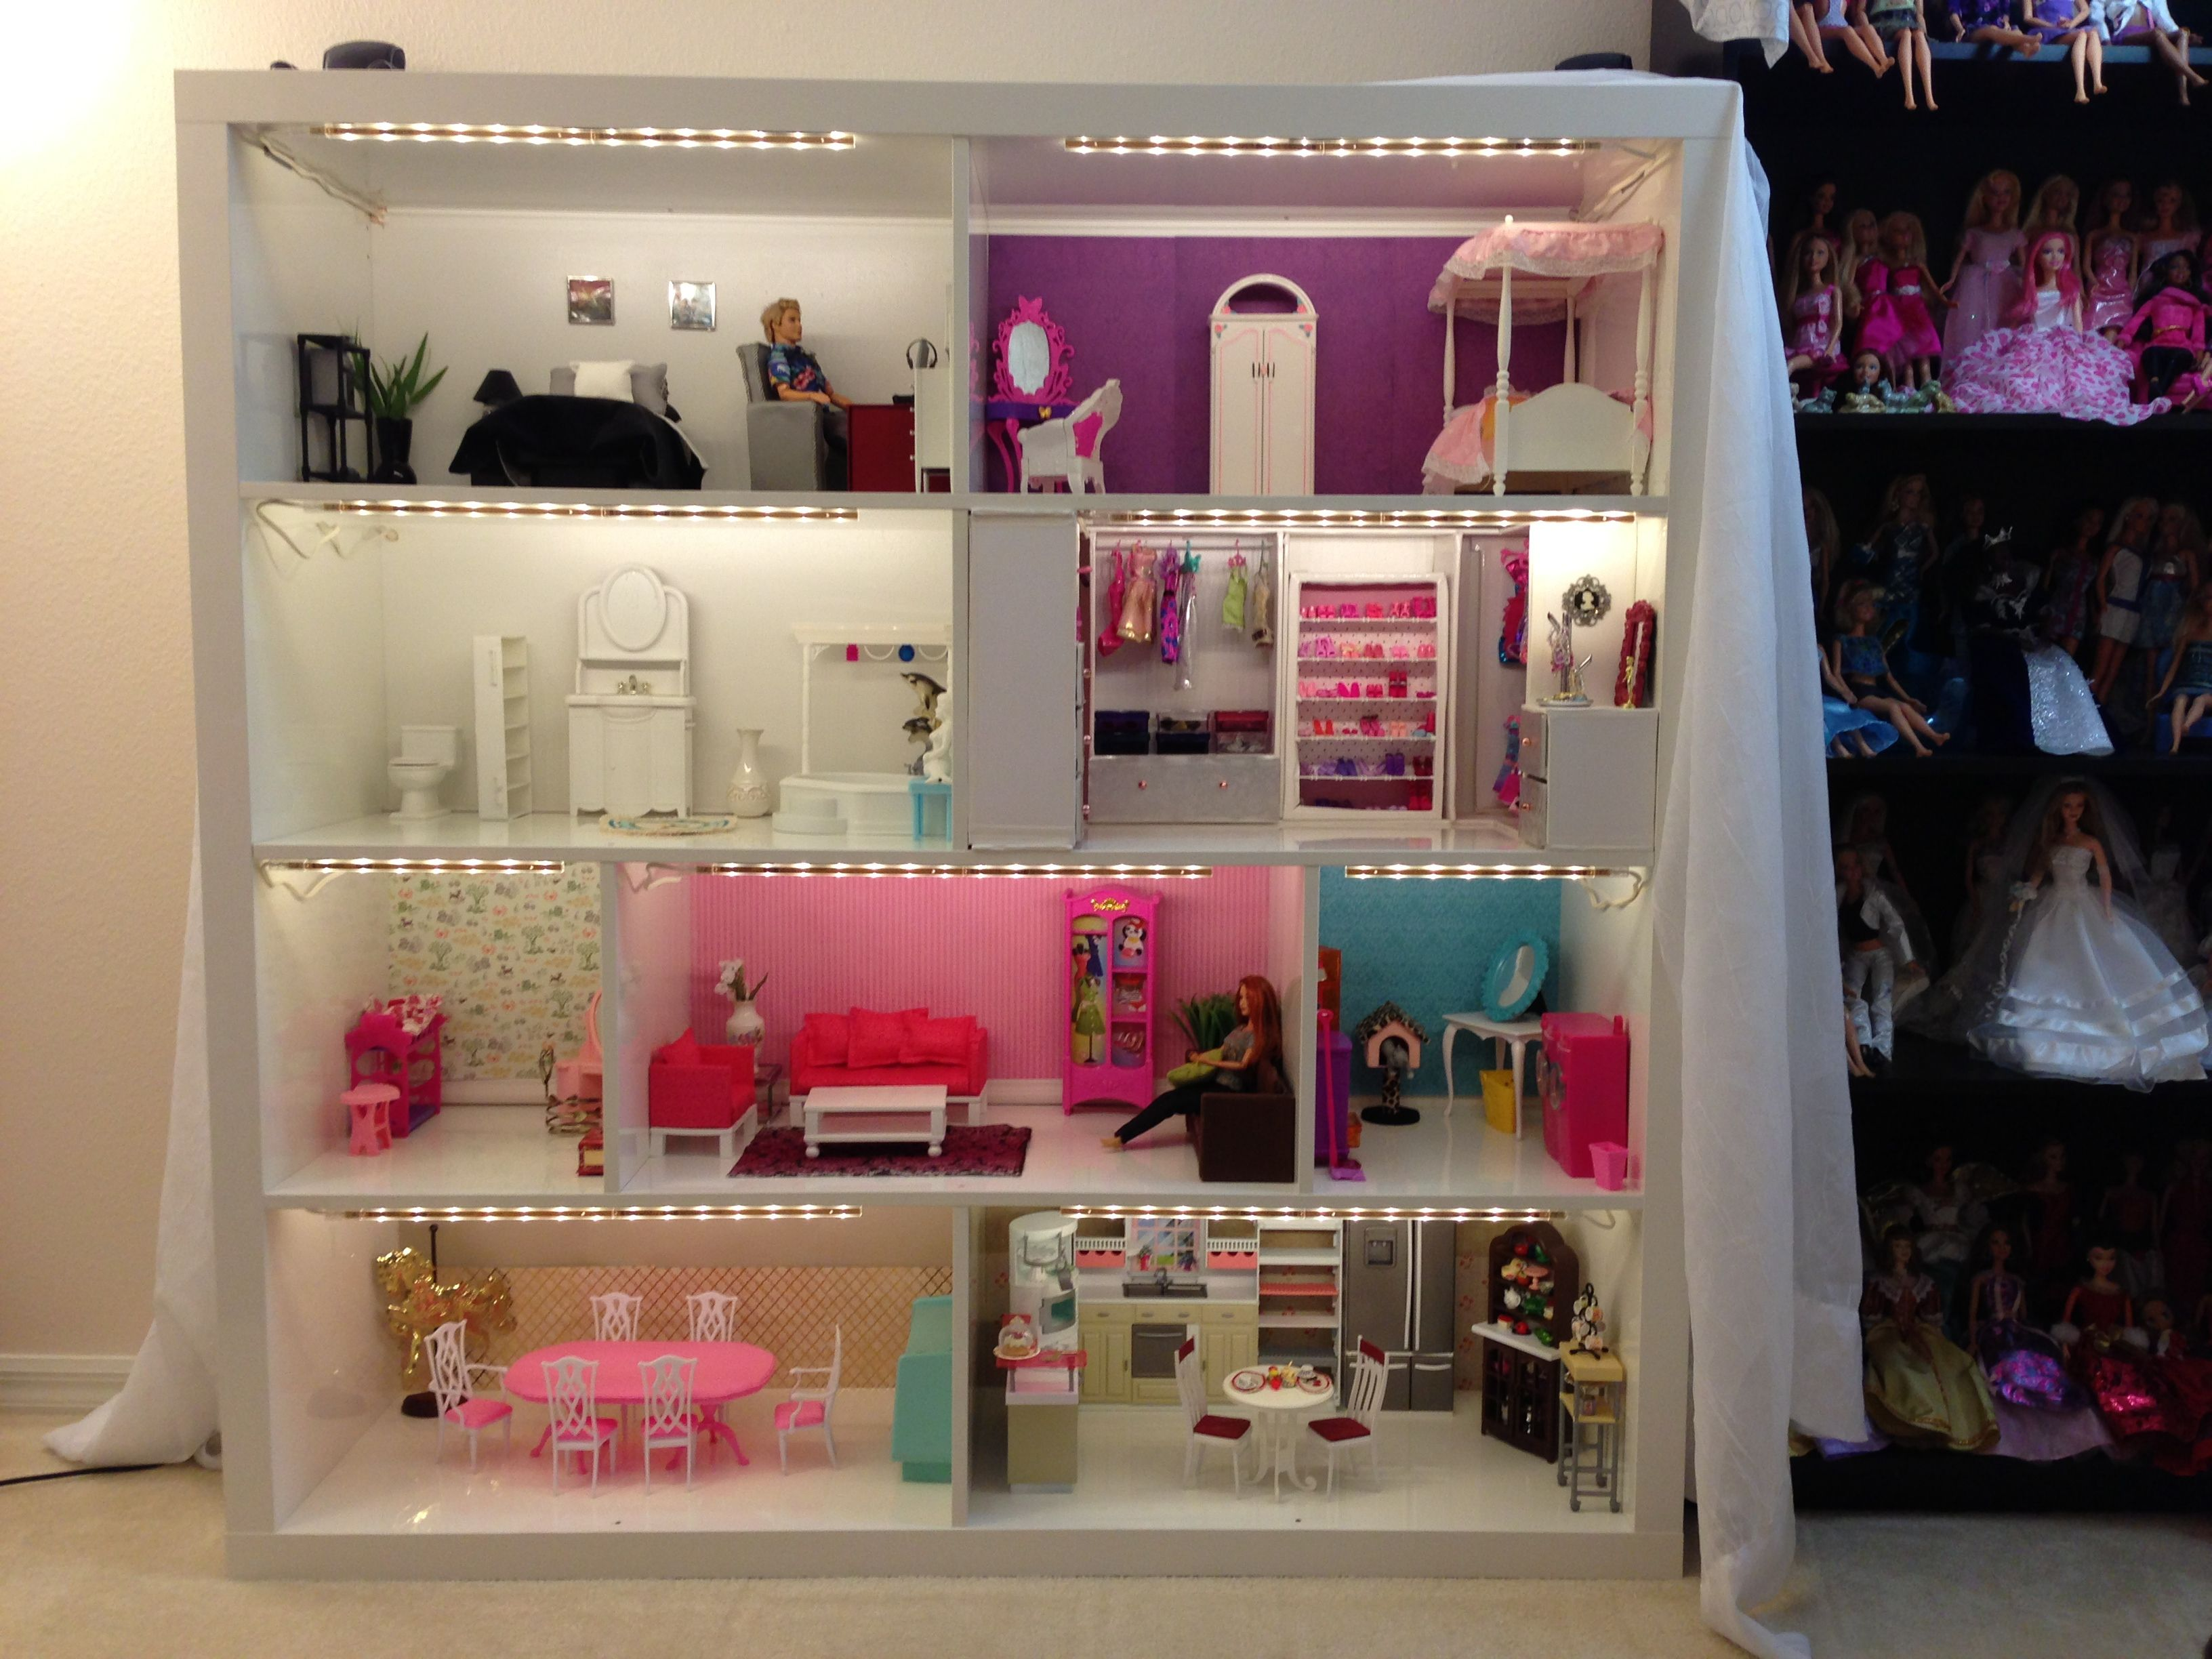 Barbie house from Expedit shelves, now with lighting! Also